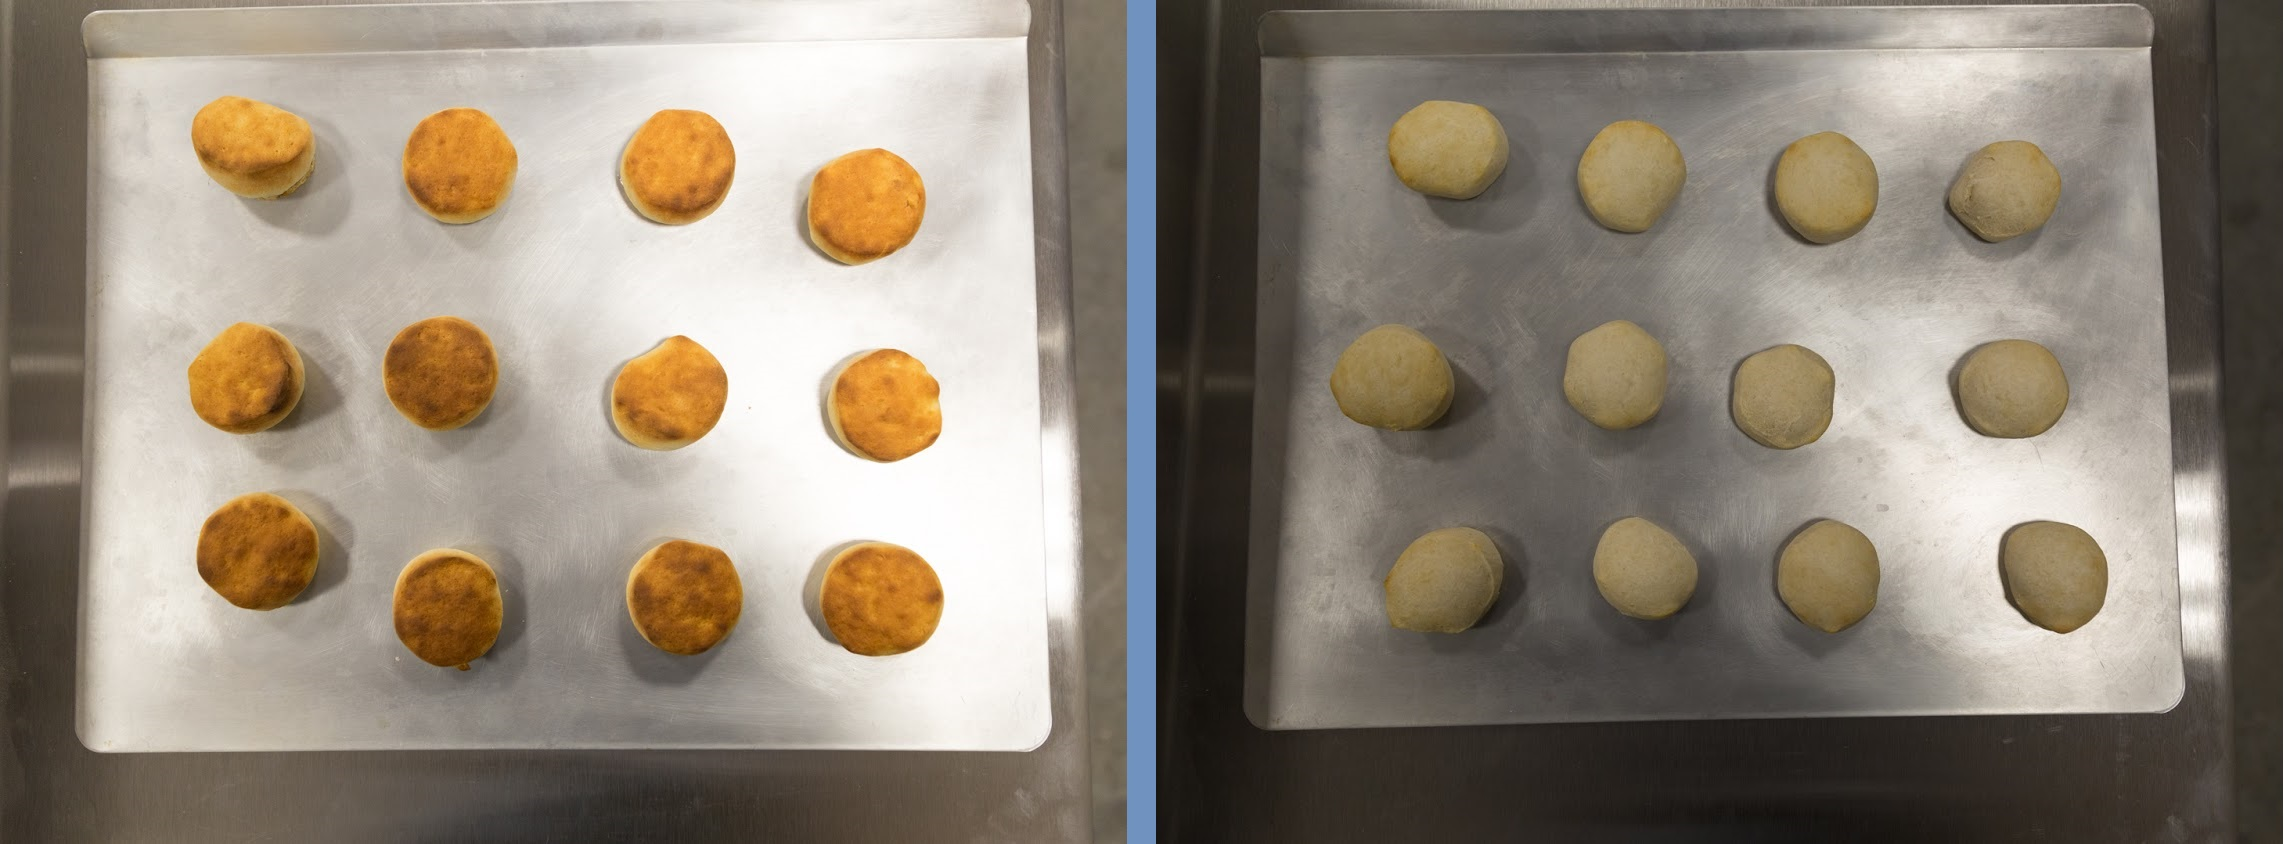 ge-artistry-oven-biscuits-double-rack-side-by-side.jpg